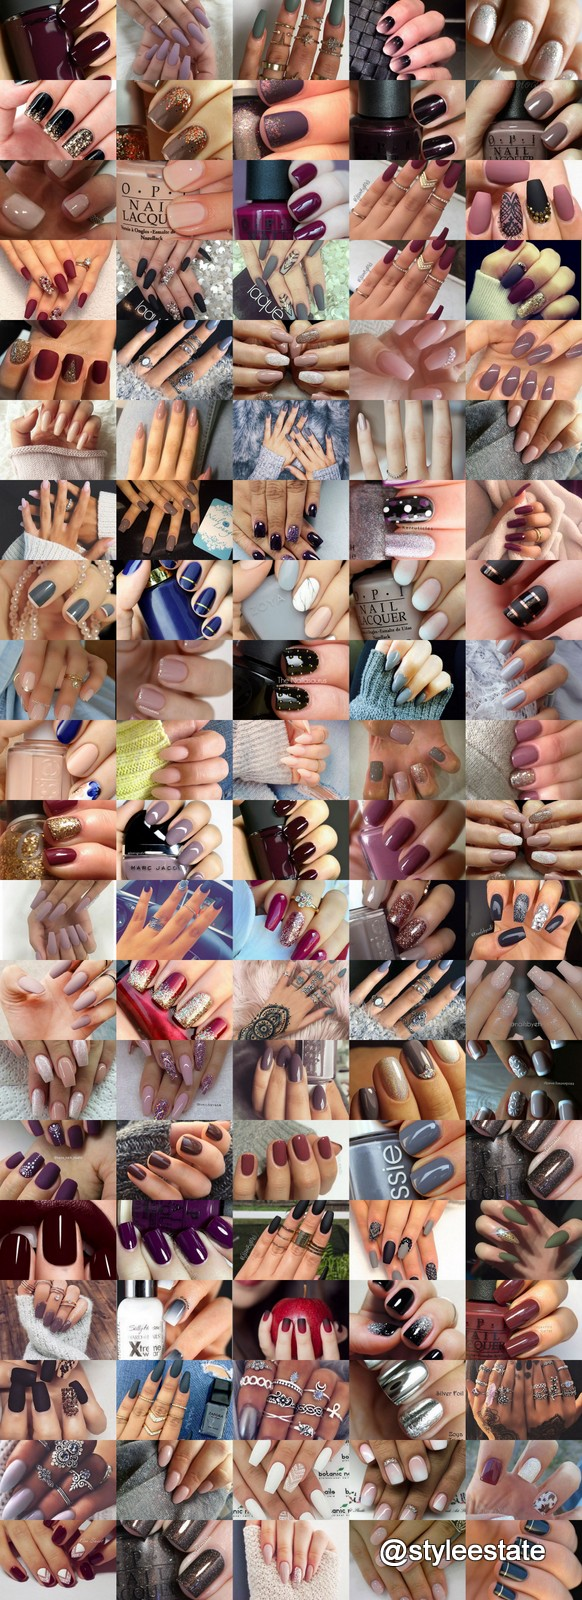 101 Nail Art Ideas That Are Trending Hot Right Now (F/W) 2016